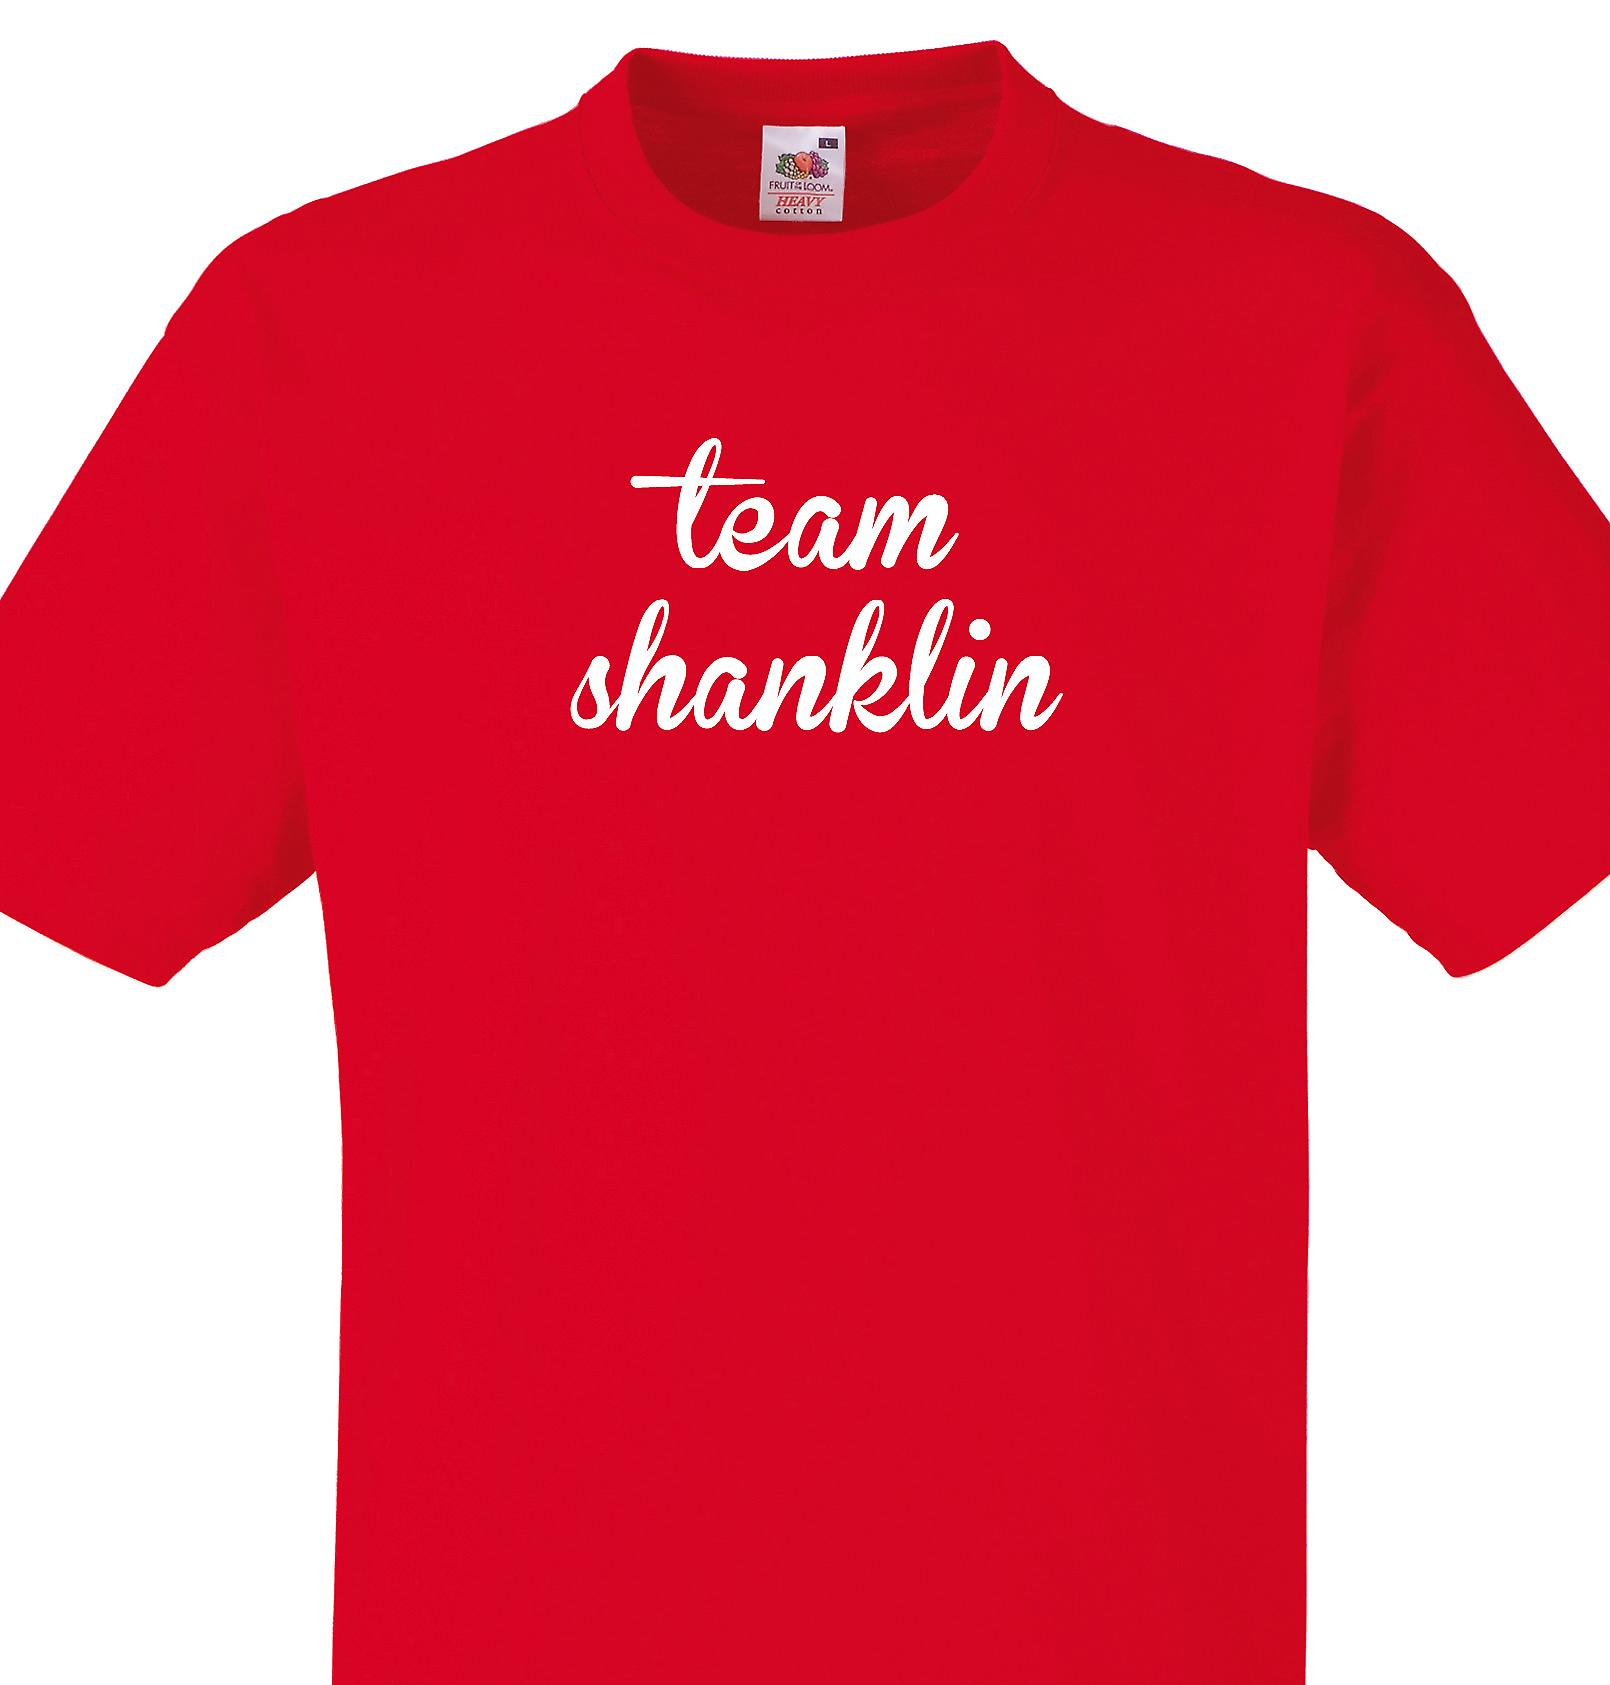 Team Shanklin Red T shirt